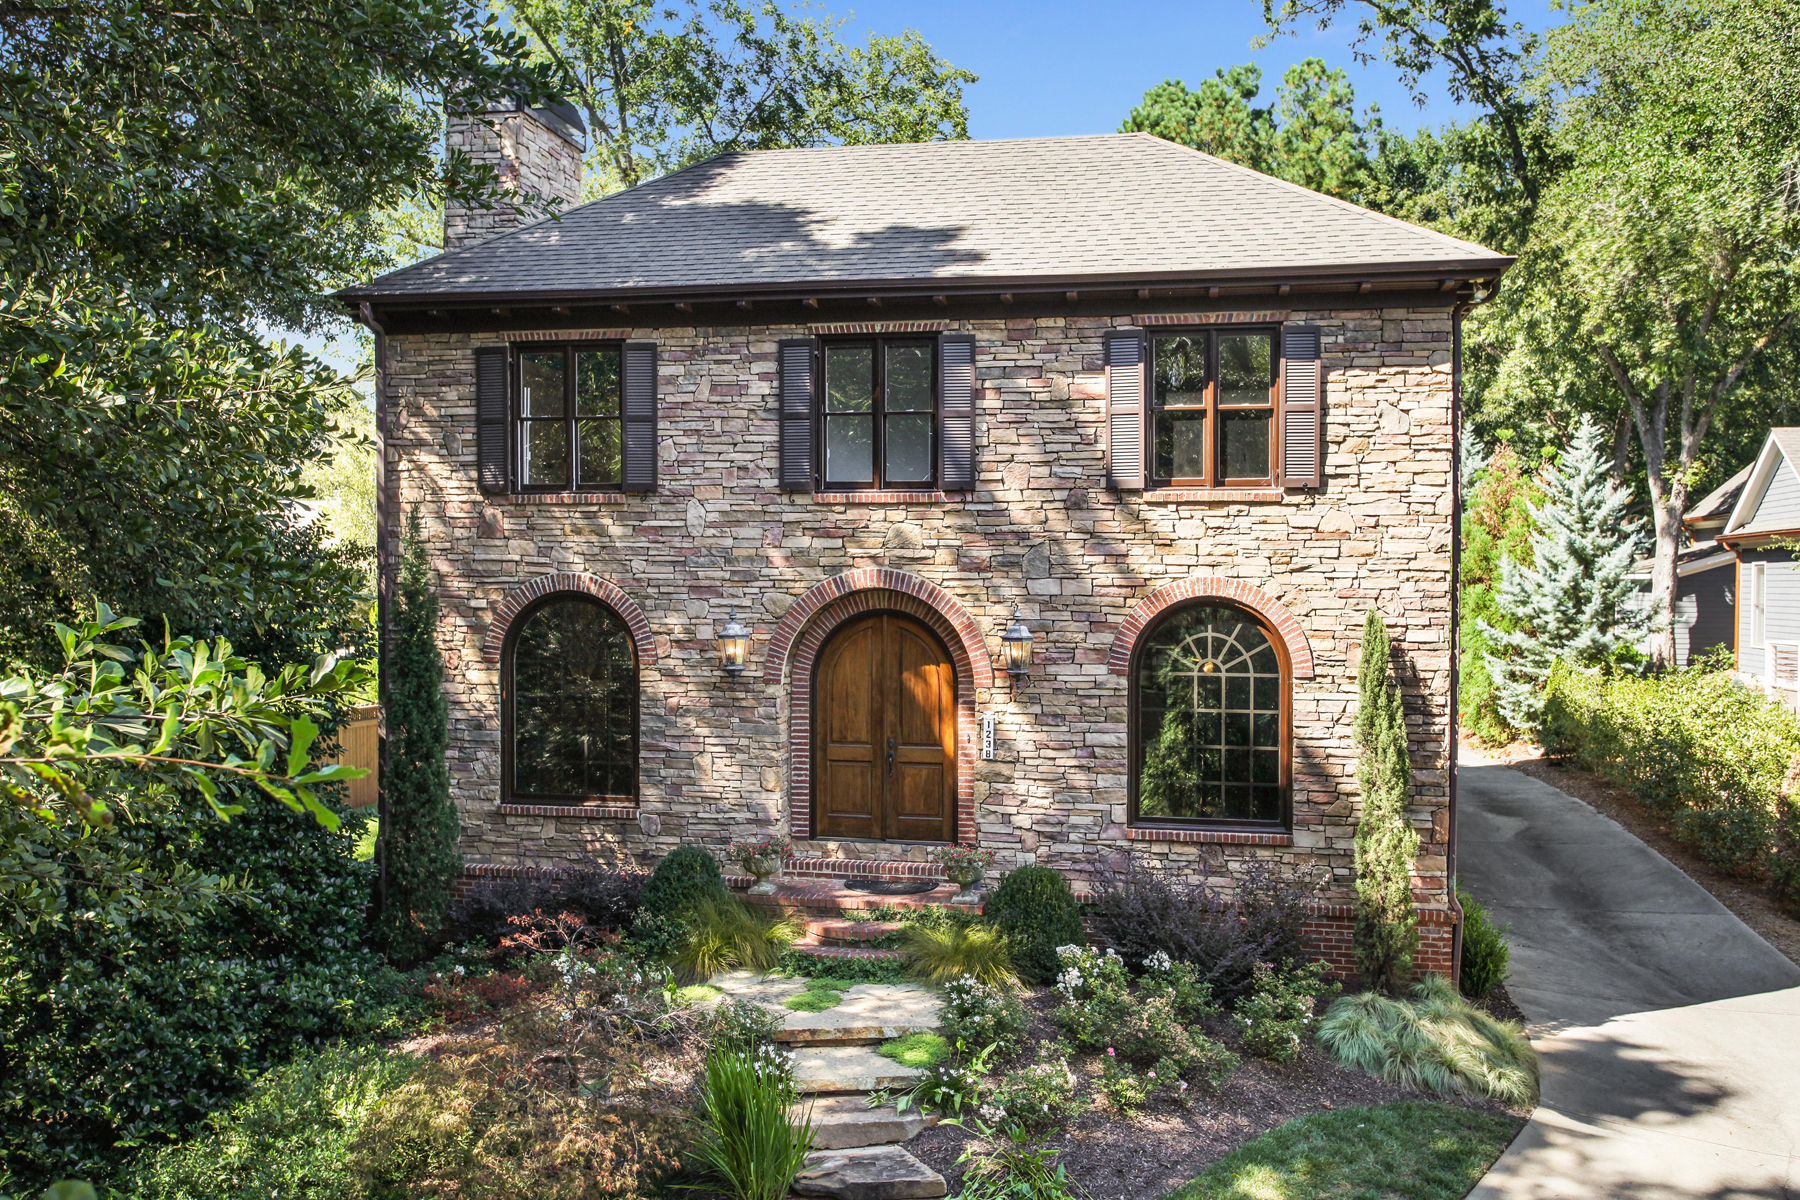 Single Family Home for Sale at A Majestic Historic Roswell 1238 Minhinette Dr Roswell, Georgia, 30075 United States